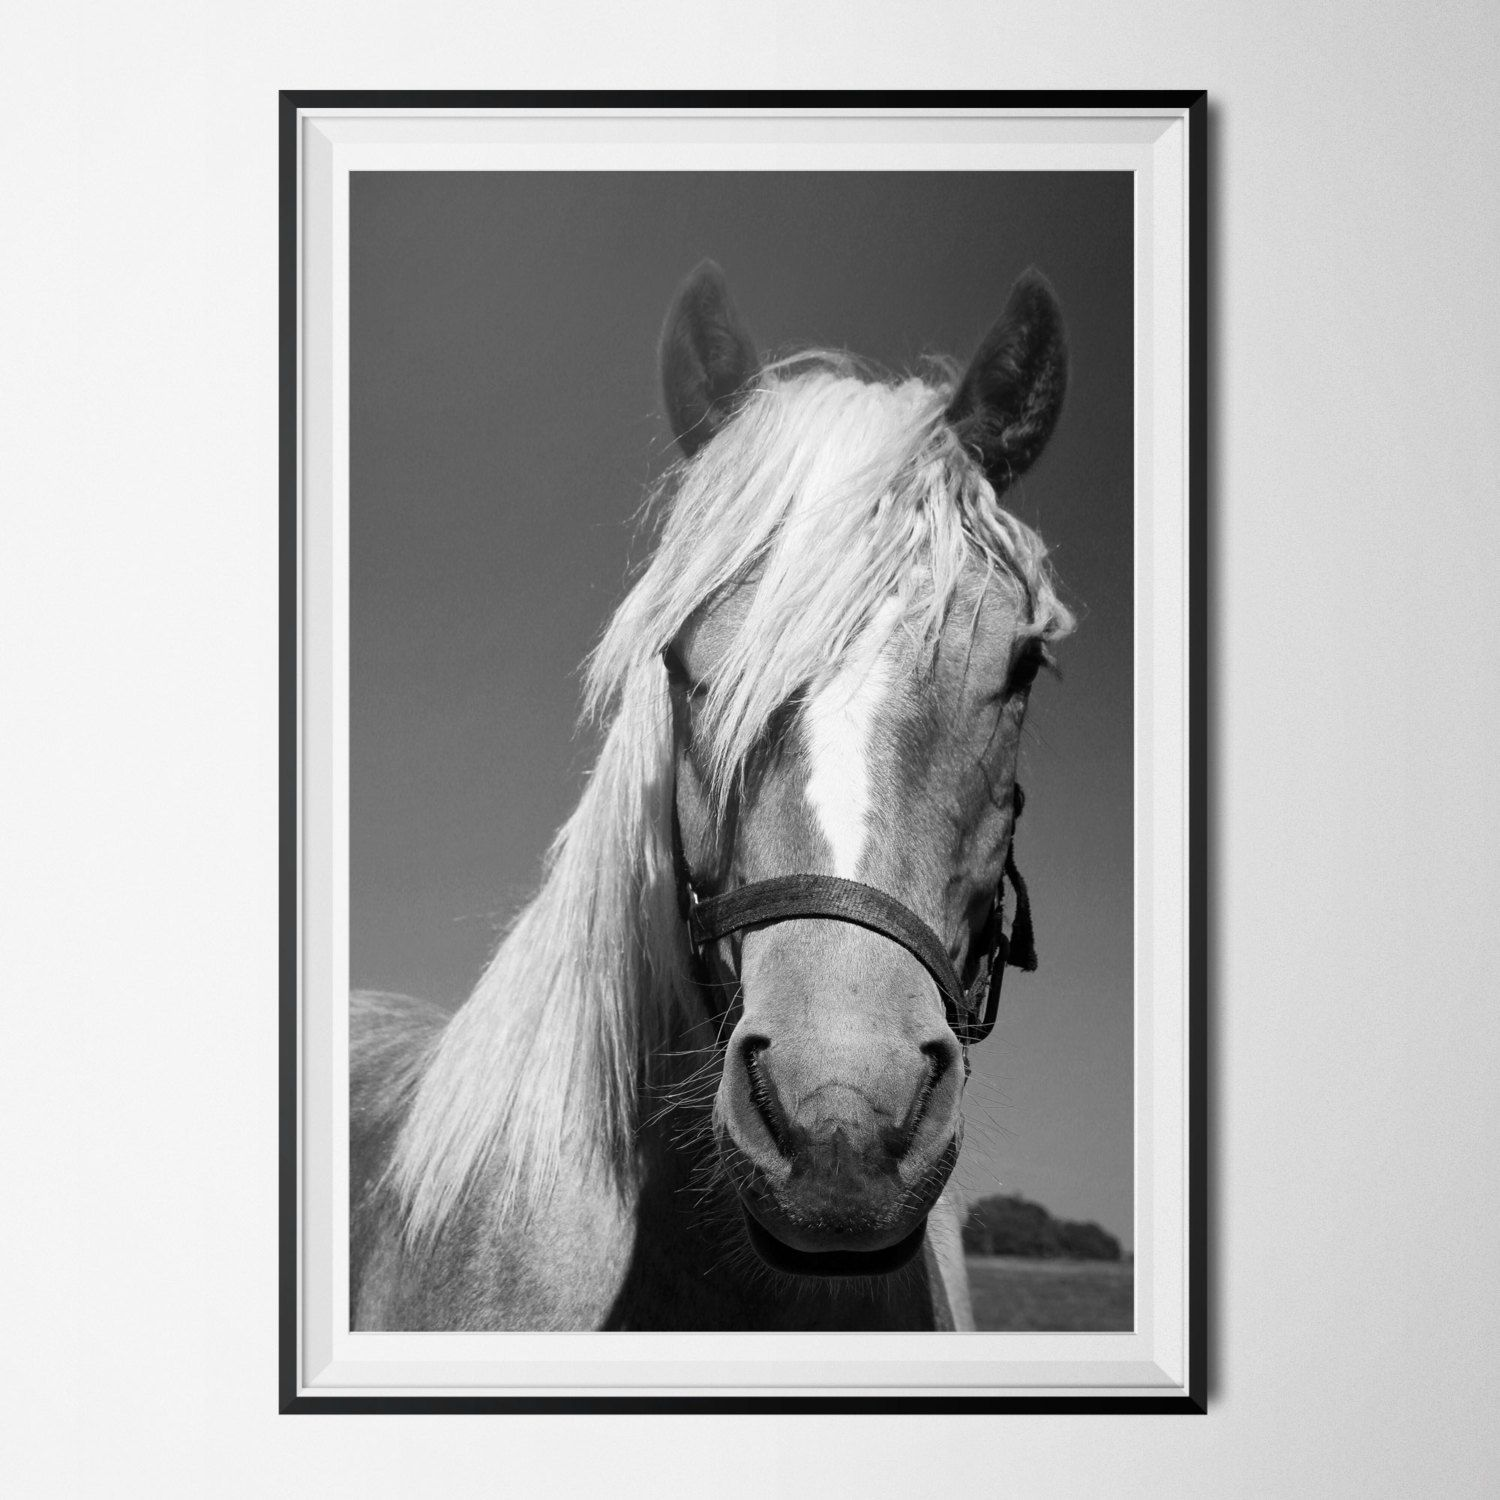 Horse print black white photography animal art giclee print horse poster fine art print 8x10 11x14 16x20 18x24 24x36 poster by olaholahola on